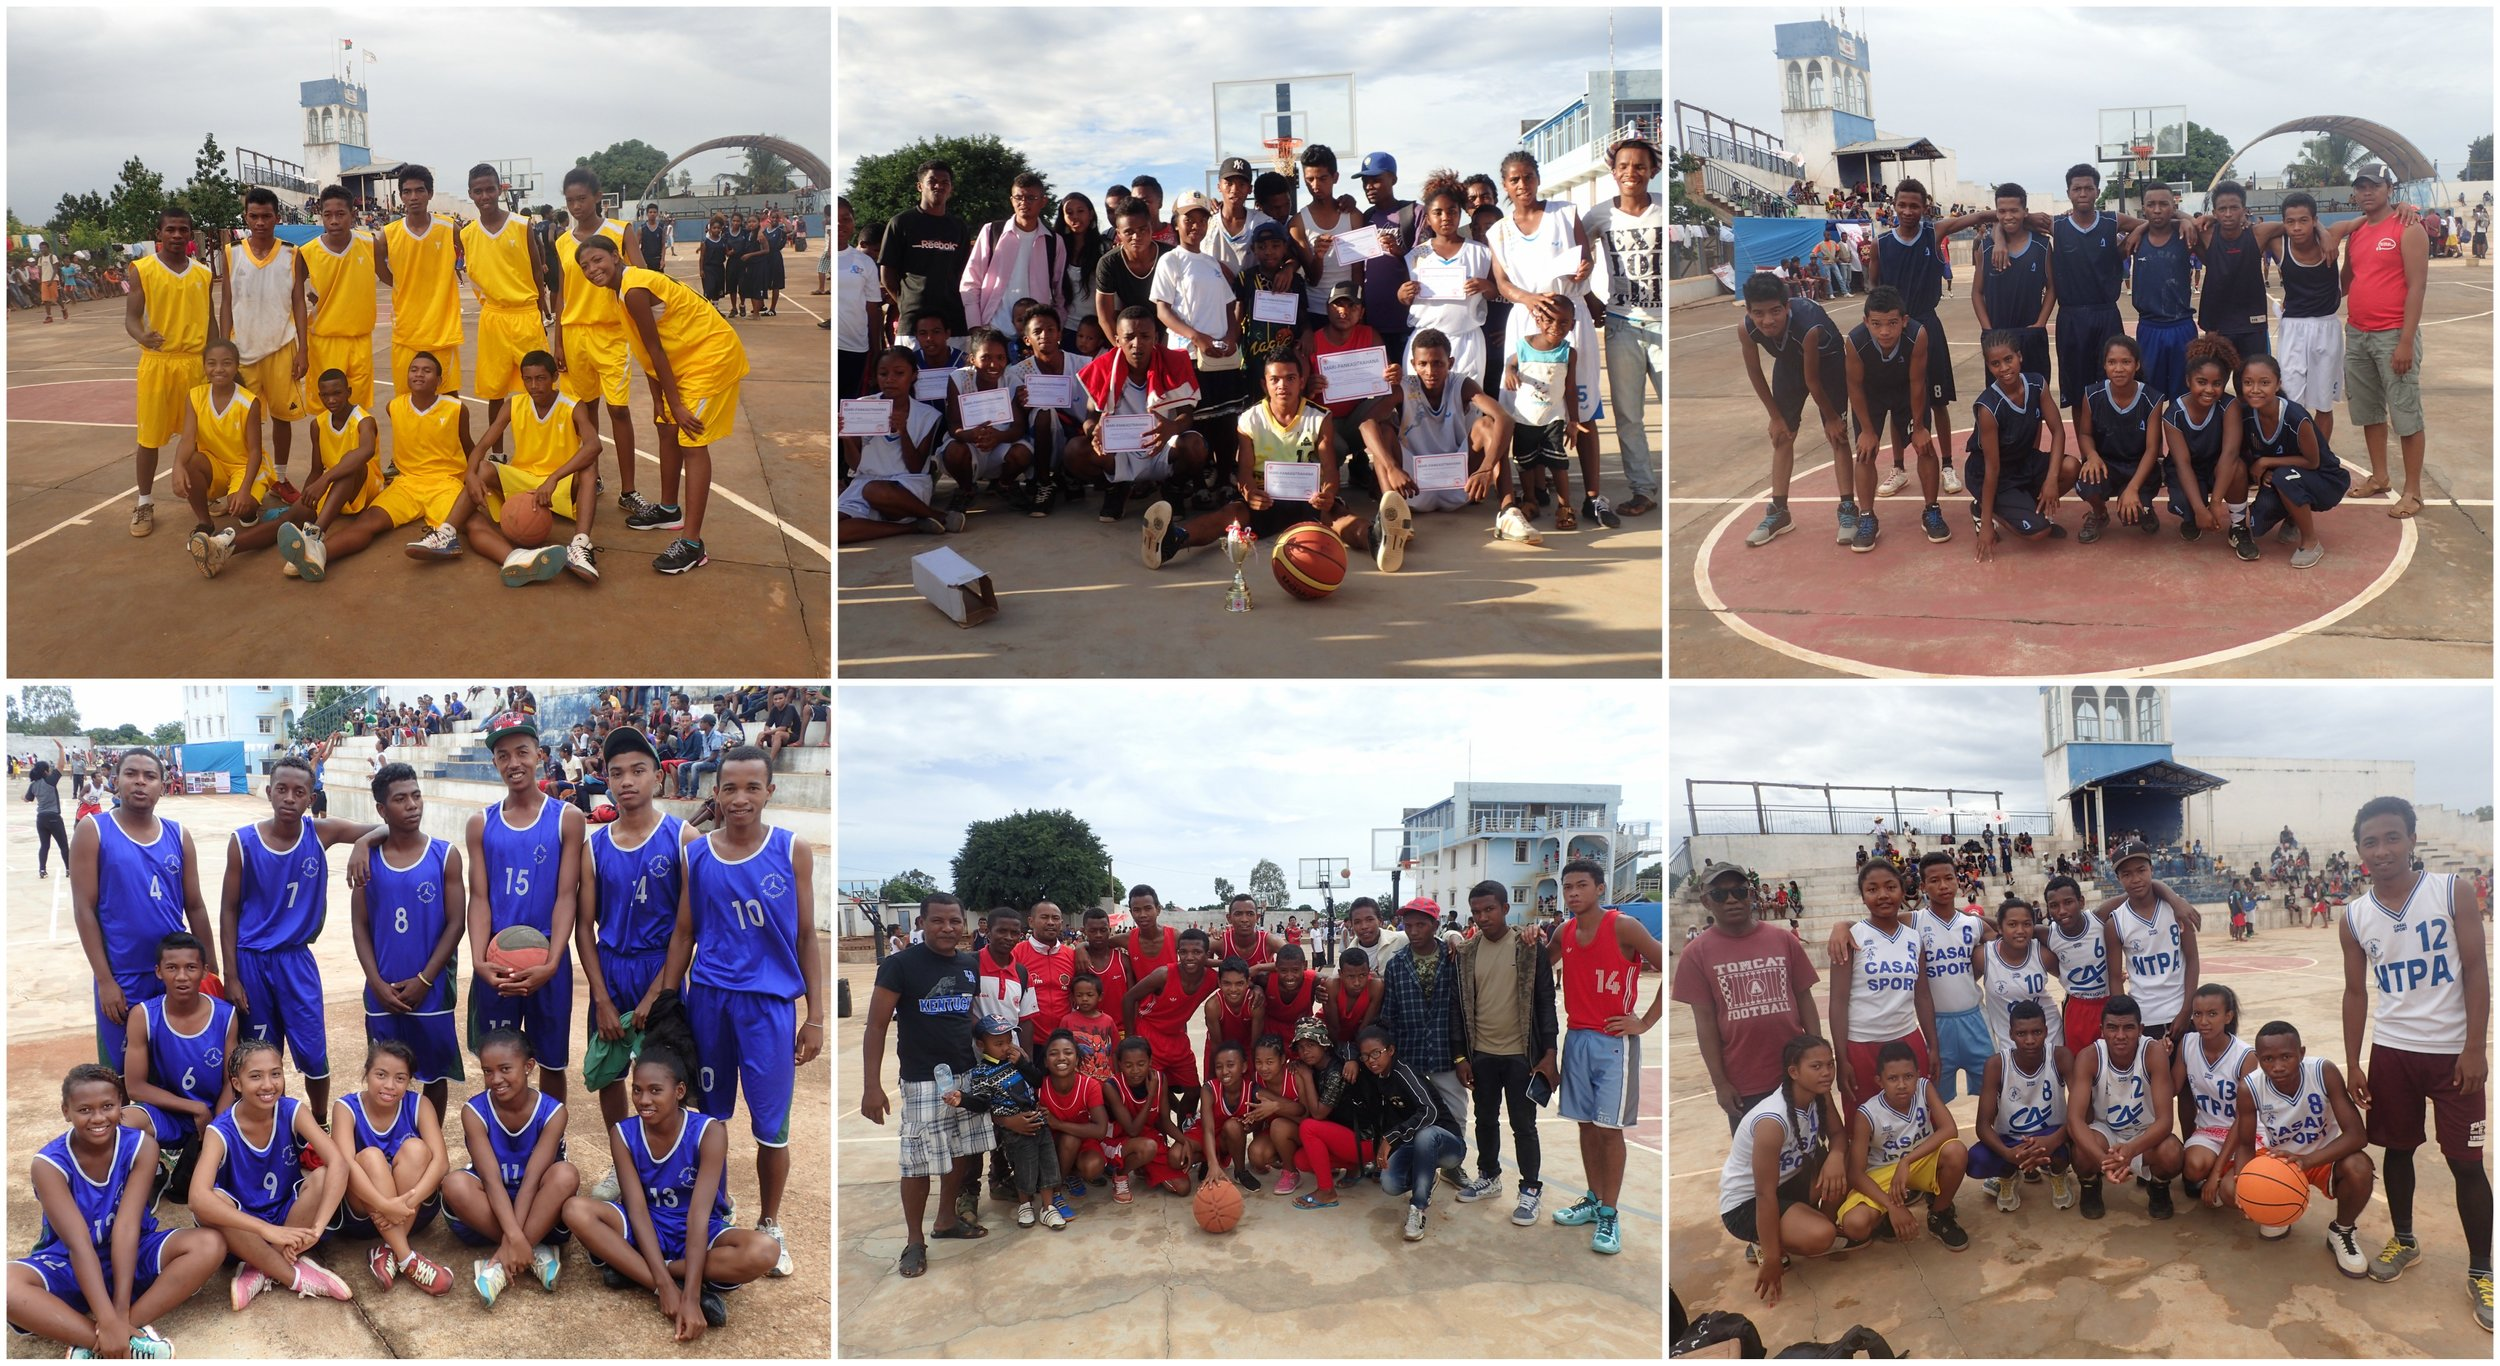 We invited two private schools, two public schools and a Red Cross team from Ankandinondry to participate in the tournament. Each team consisted of girls and boys and the players were between 15 and 25 years old.